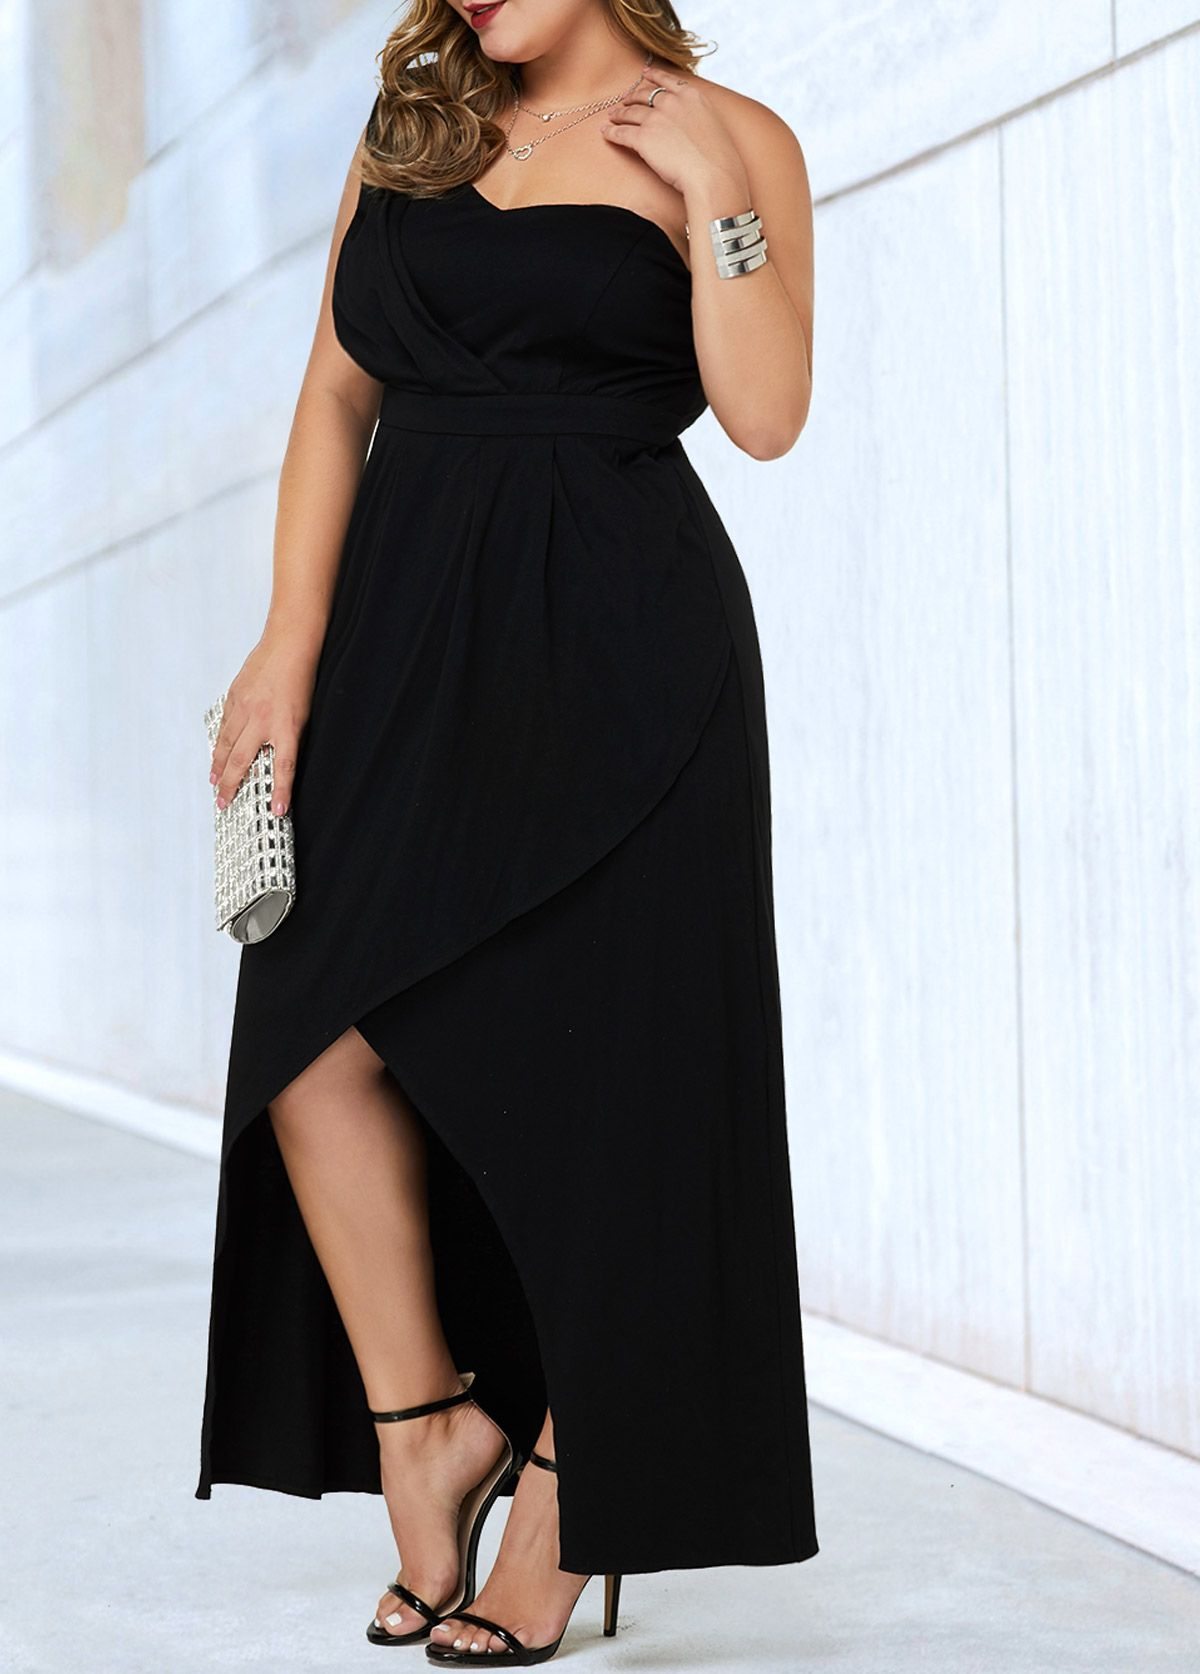 Plus Size One Shoulder Black Dress  Rosewe.com - USD $10.10